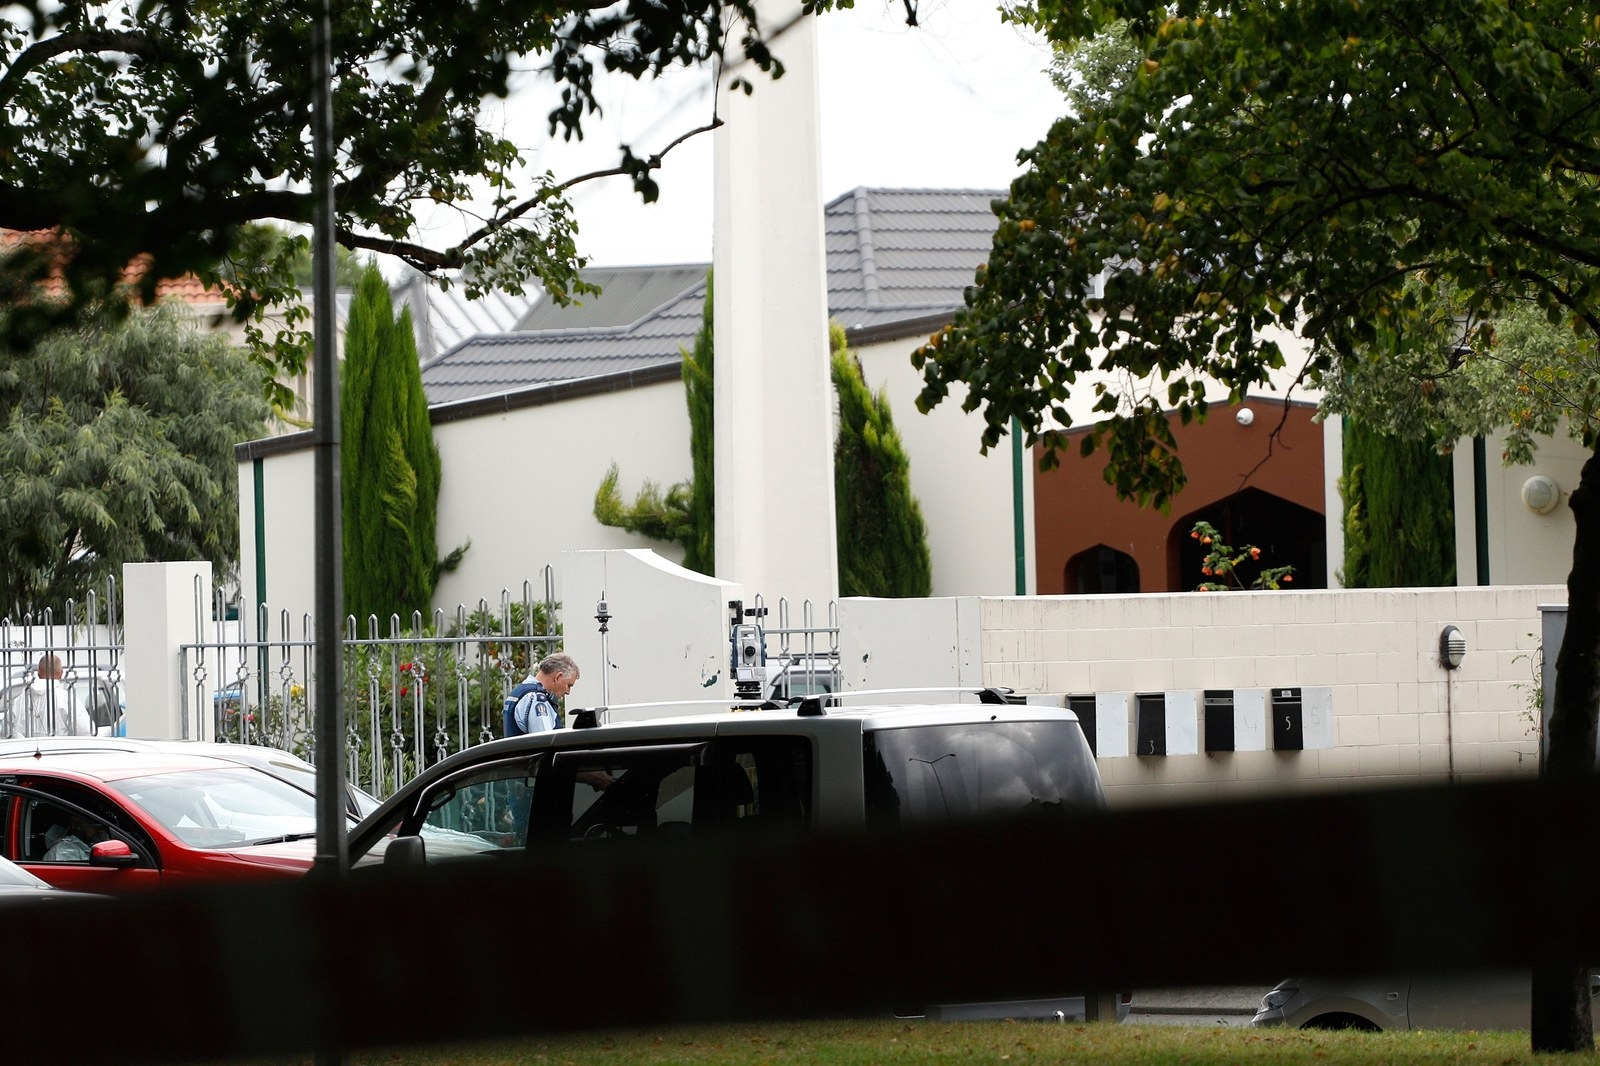 Masjid Christchurch Twitter: The New Zealand Mosque Attacks And The Eerie Absence Of